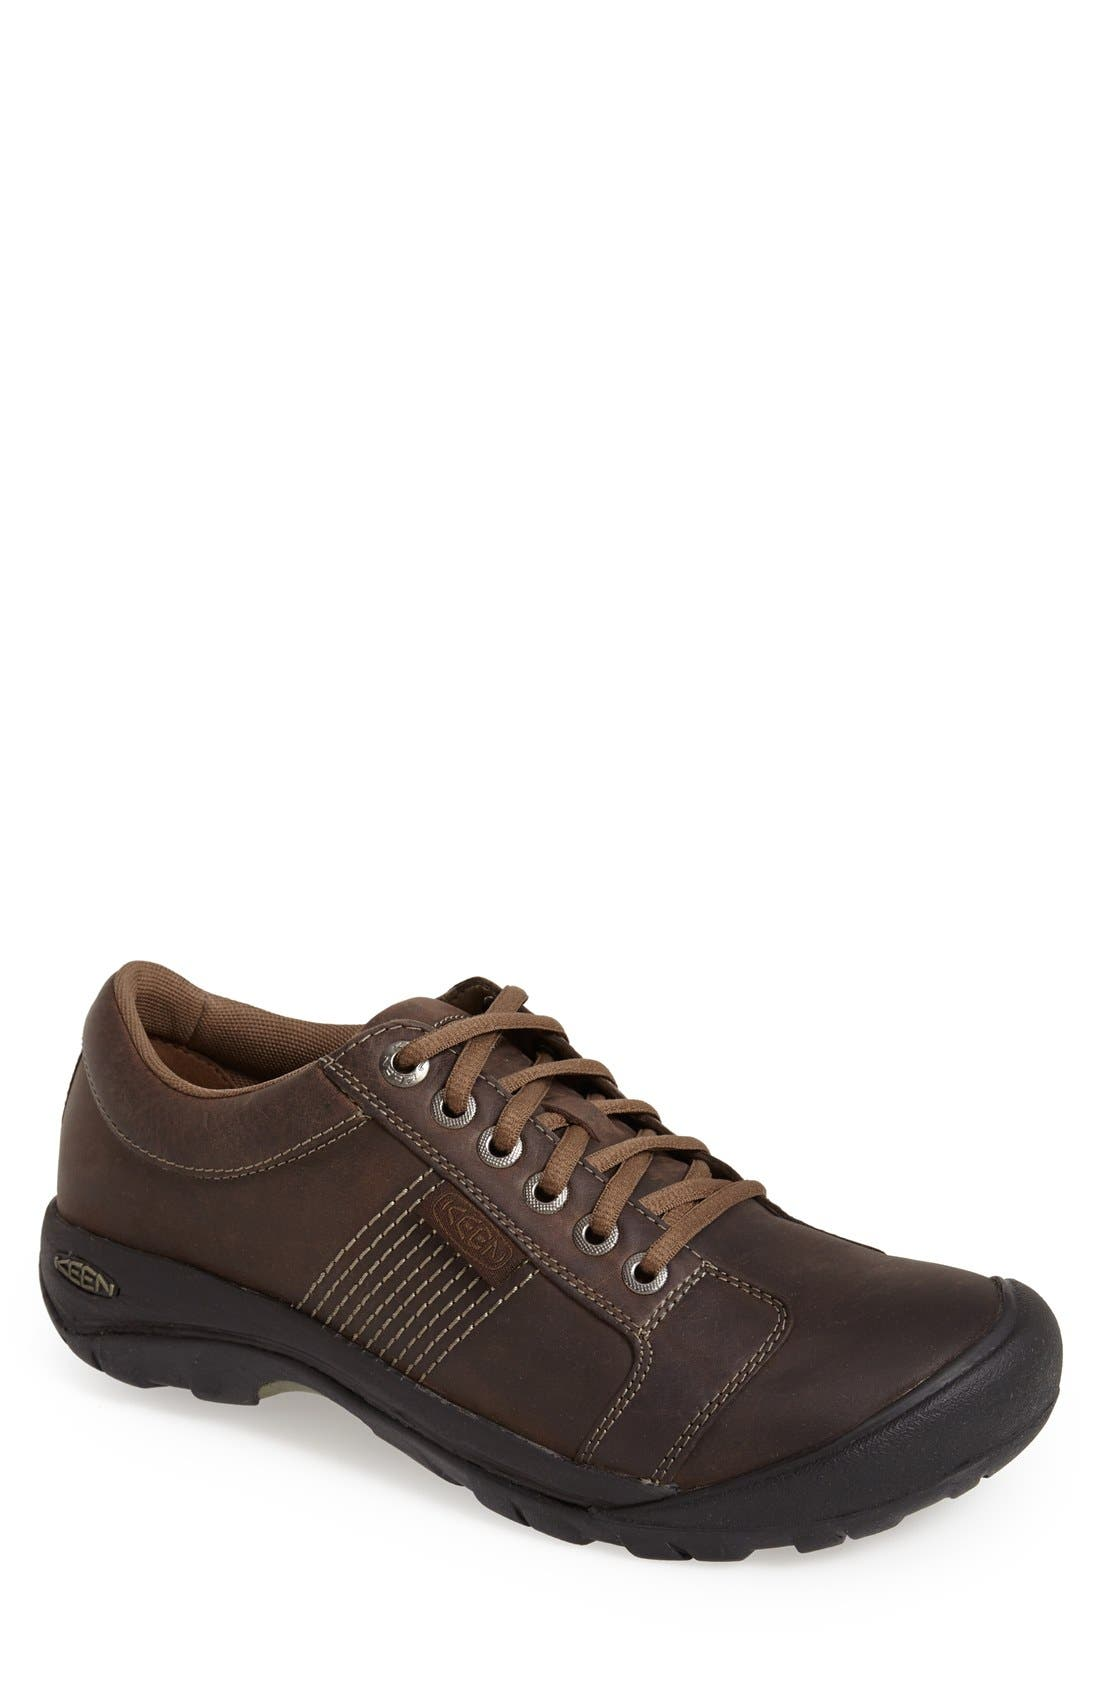 'Austin' Sneaker,                             Main thumbnail 1, color,                             CHOCOLATE BROWN